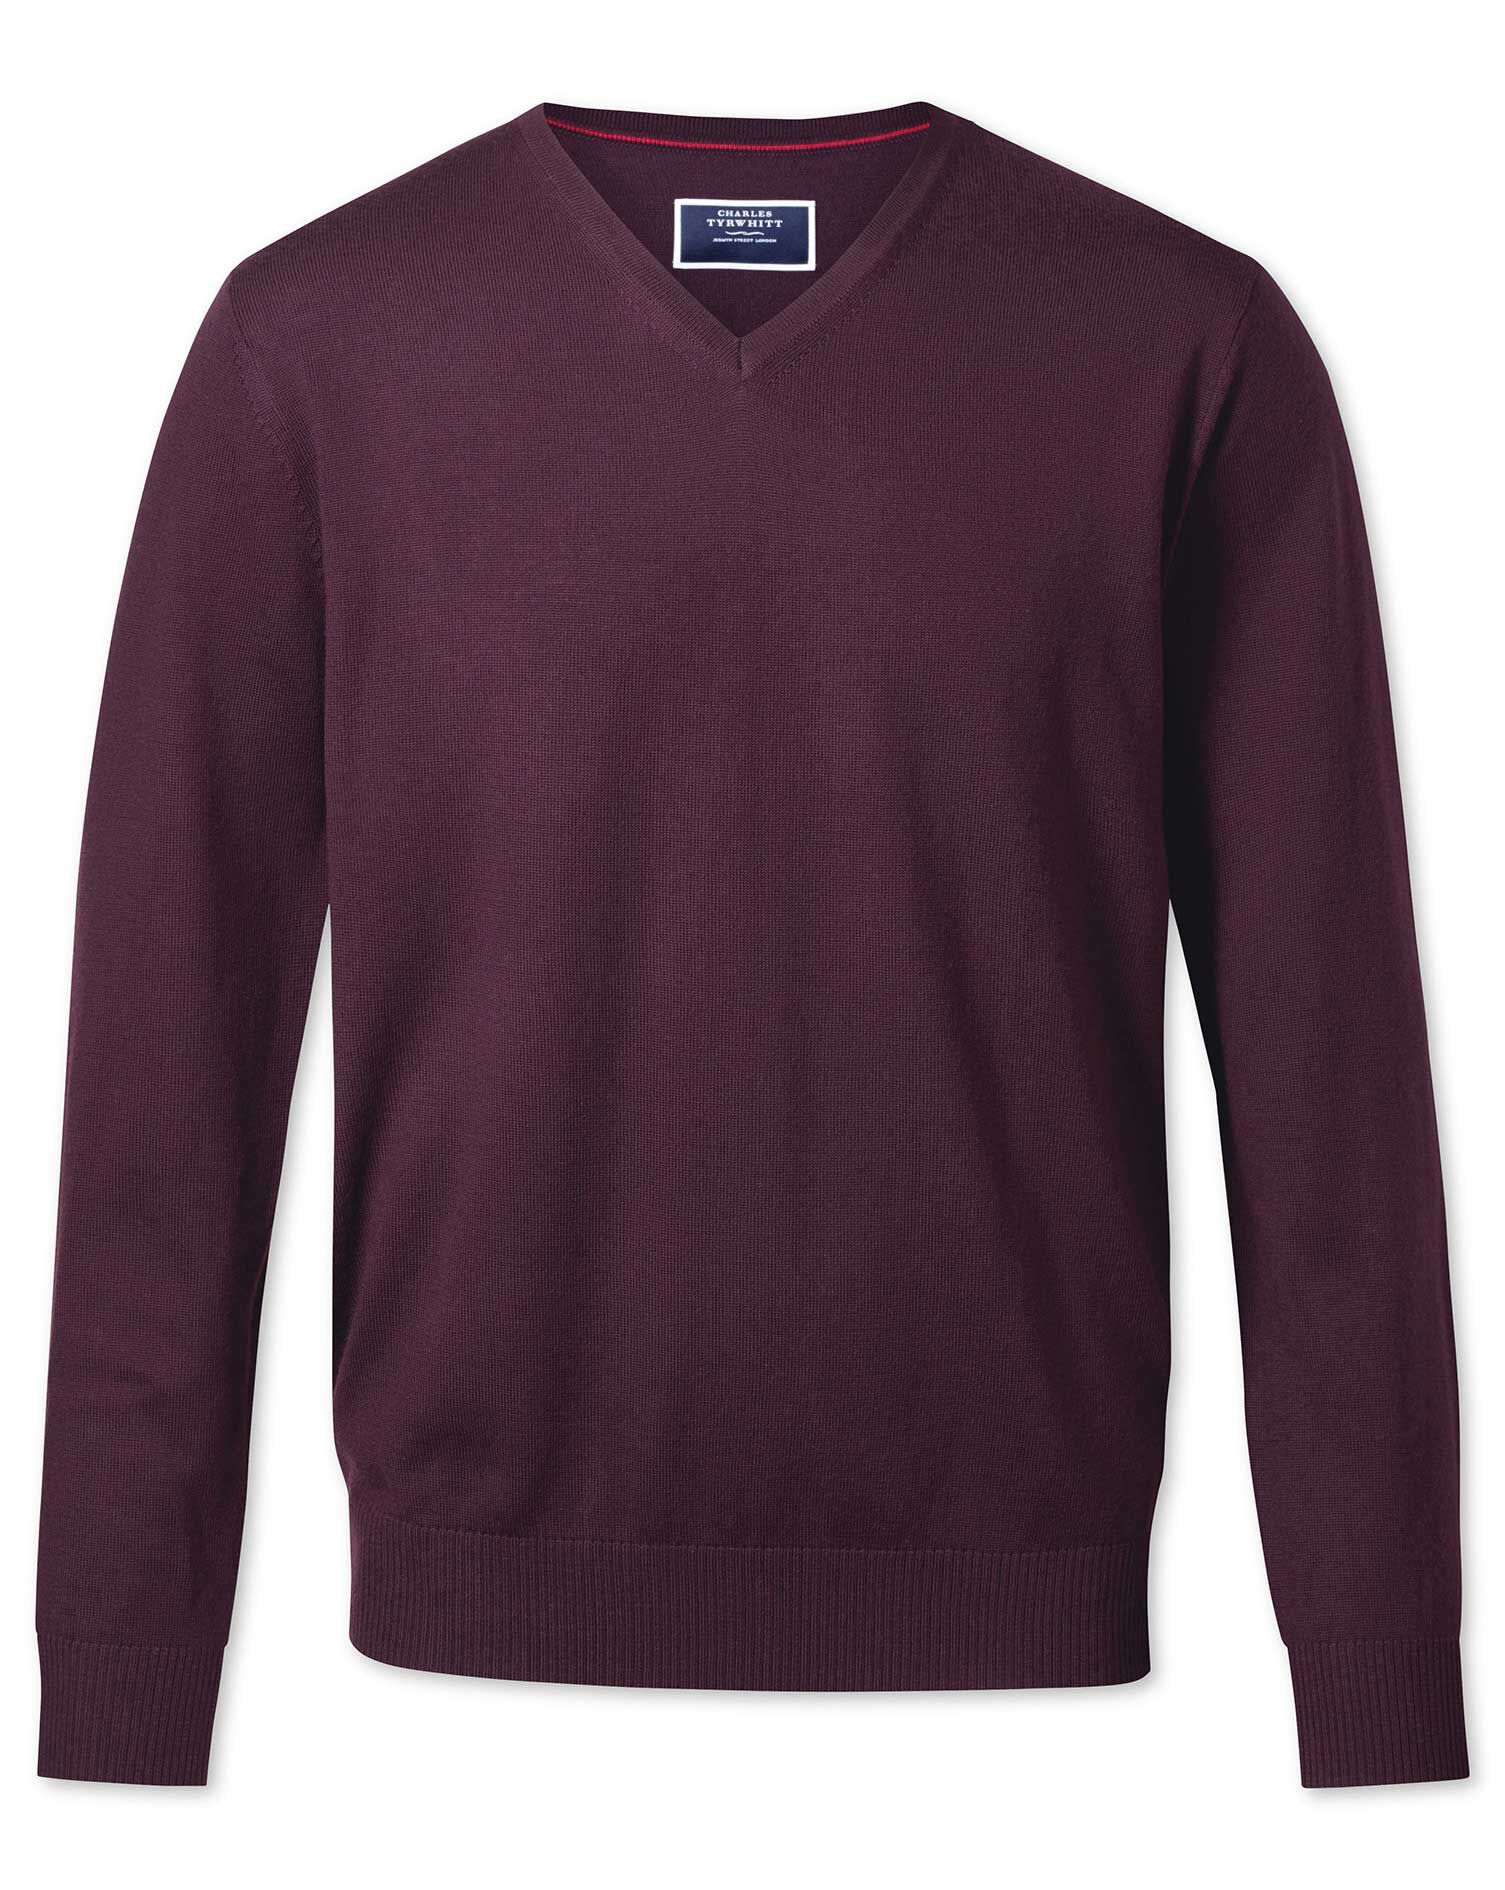 Wine Merino Wool V-Neck Jumper Size XXL by Charles Tyrwhitt